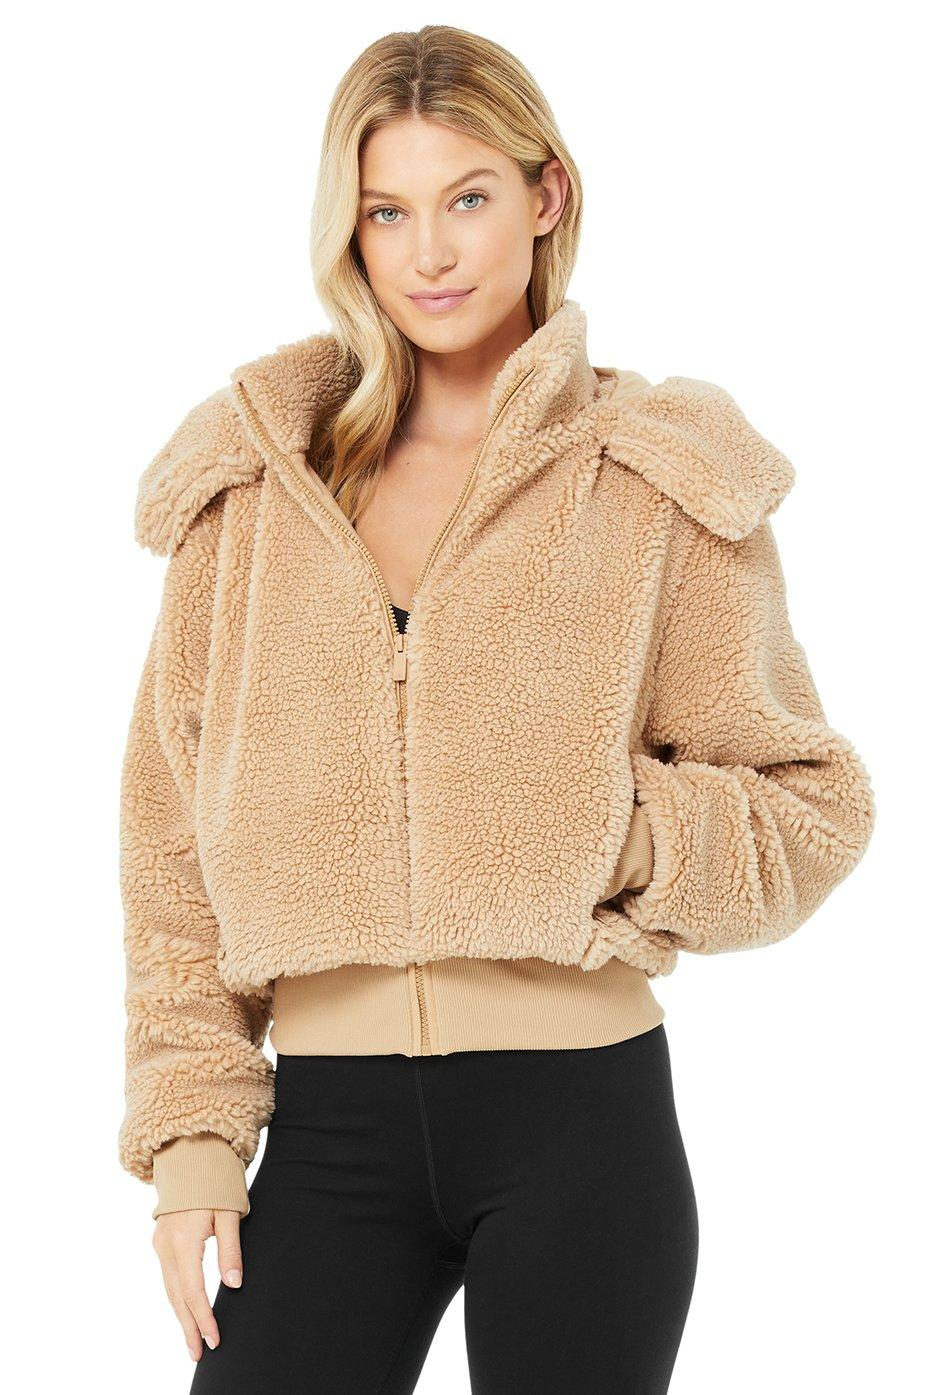 Addison Rae was spotted in Alo Yoga's Foxy Sherpa Jacket, on sale for Black Friday, $196 (originally $246).